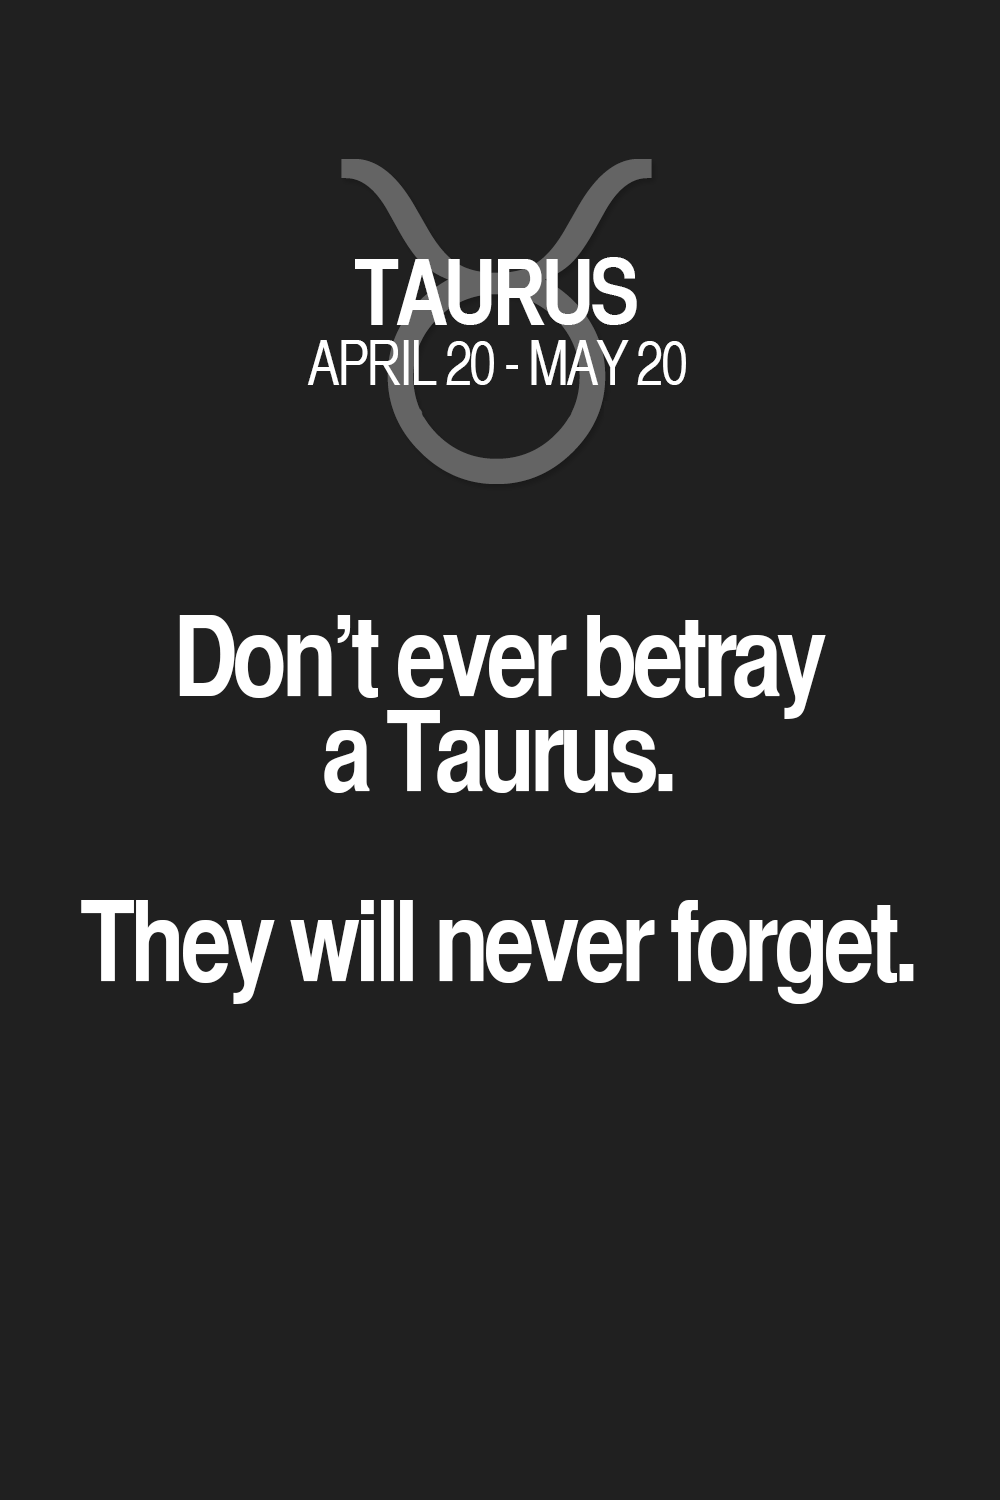 Don't ever betray a Taurus  They will never forget  | Taurus